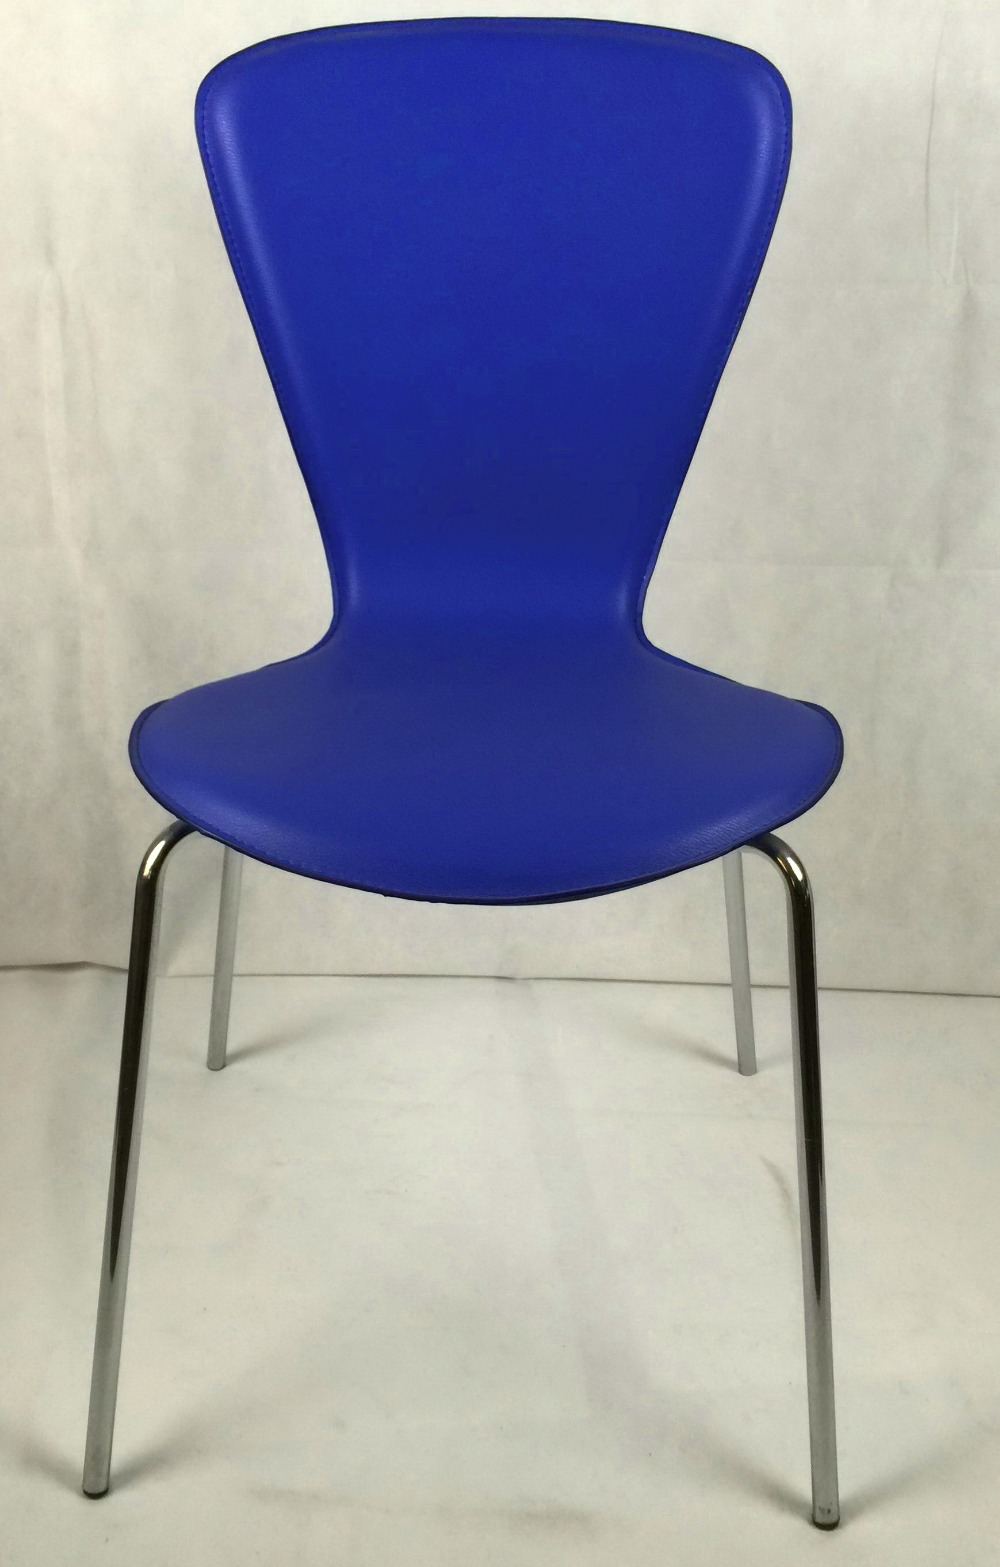 Pvc Chair Product : Hard pvc covered dining chair room chairs chromed